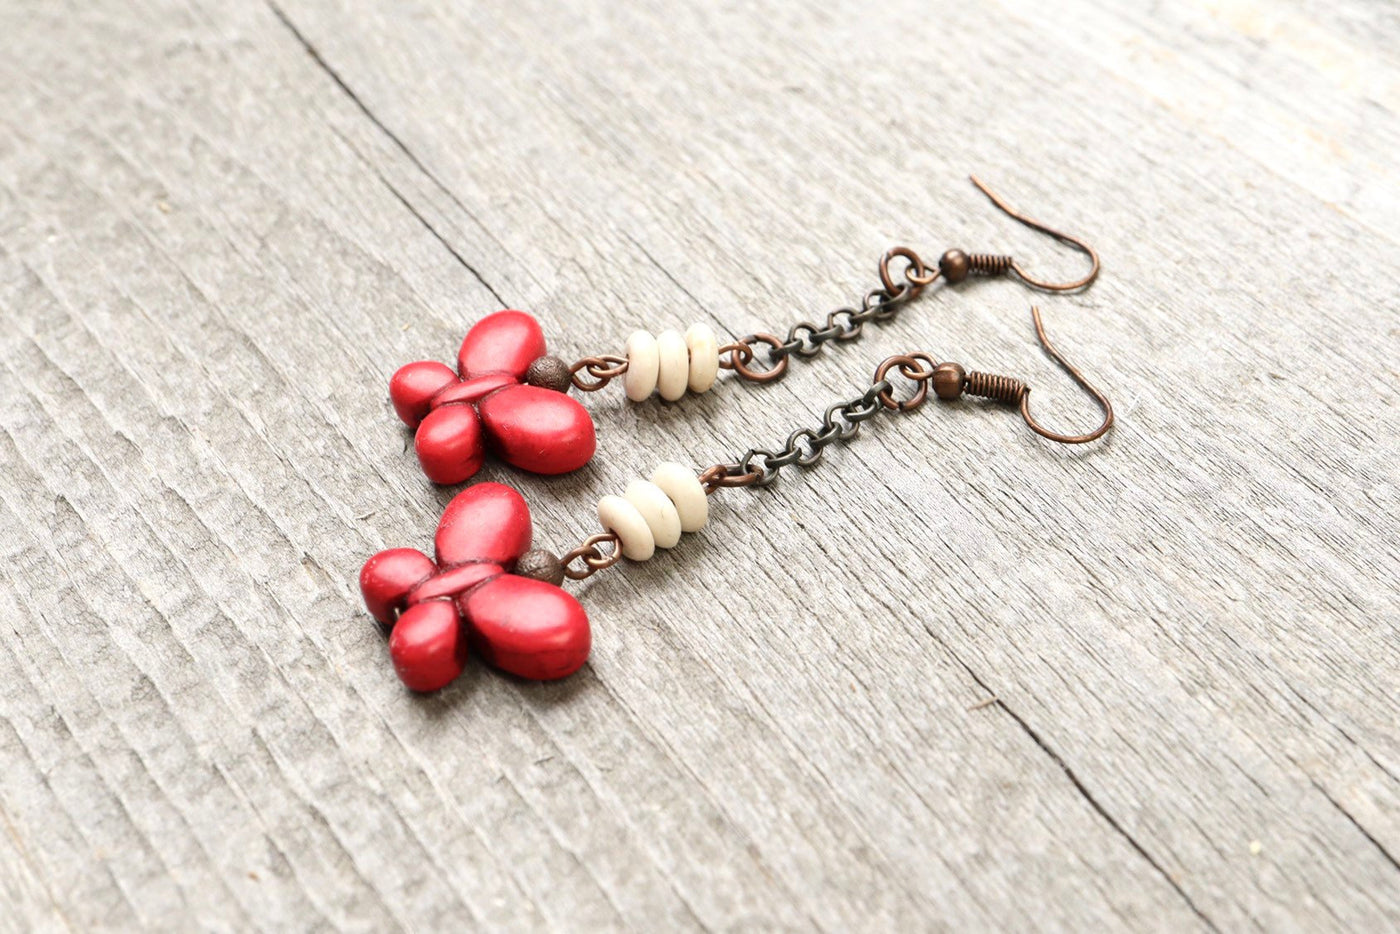 Red Butterfly Stone Boho Earrings - White Cute Lovely Elegant Bohemian Valentine's Day Gift for Her Rustic Unique Lover Long Dangle Jewelry